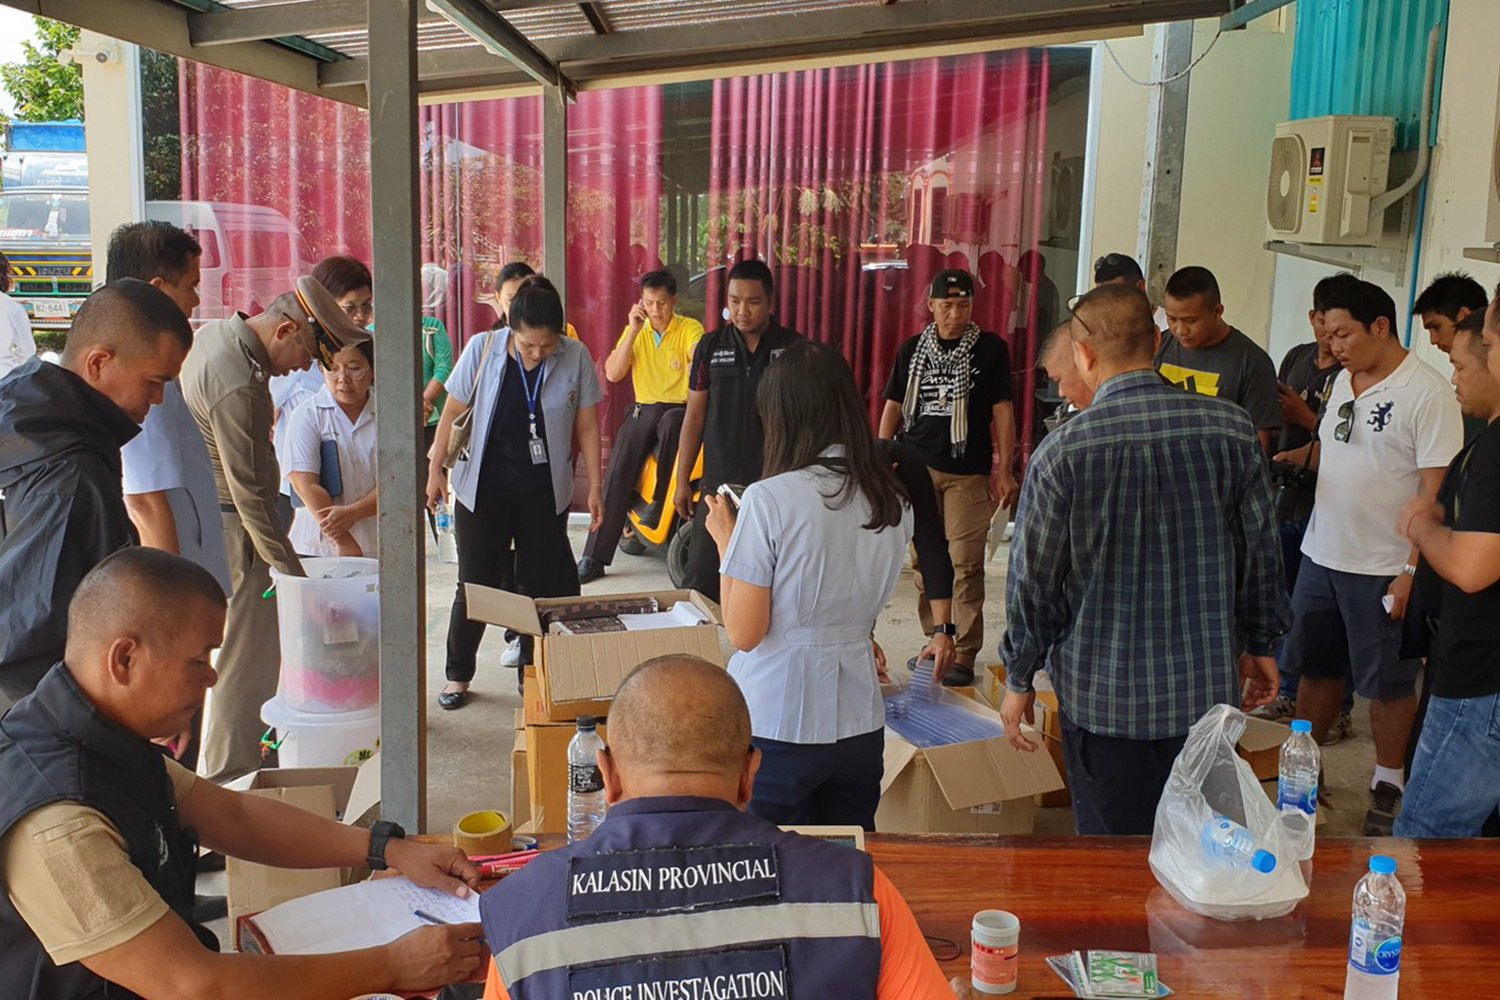 Investigators gather at the Kalasin property that housed a factory making unapproved weight-loss capsules, which have been linked to the death of one woman. (Photo by Yongyuth Phuphuangpet)